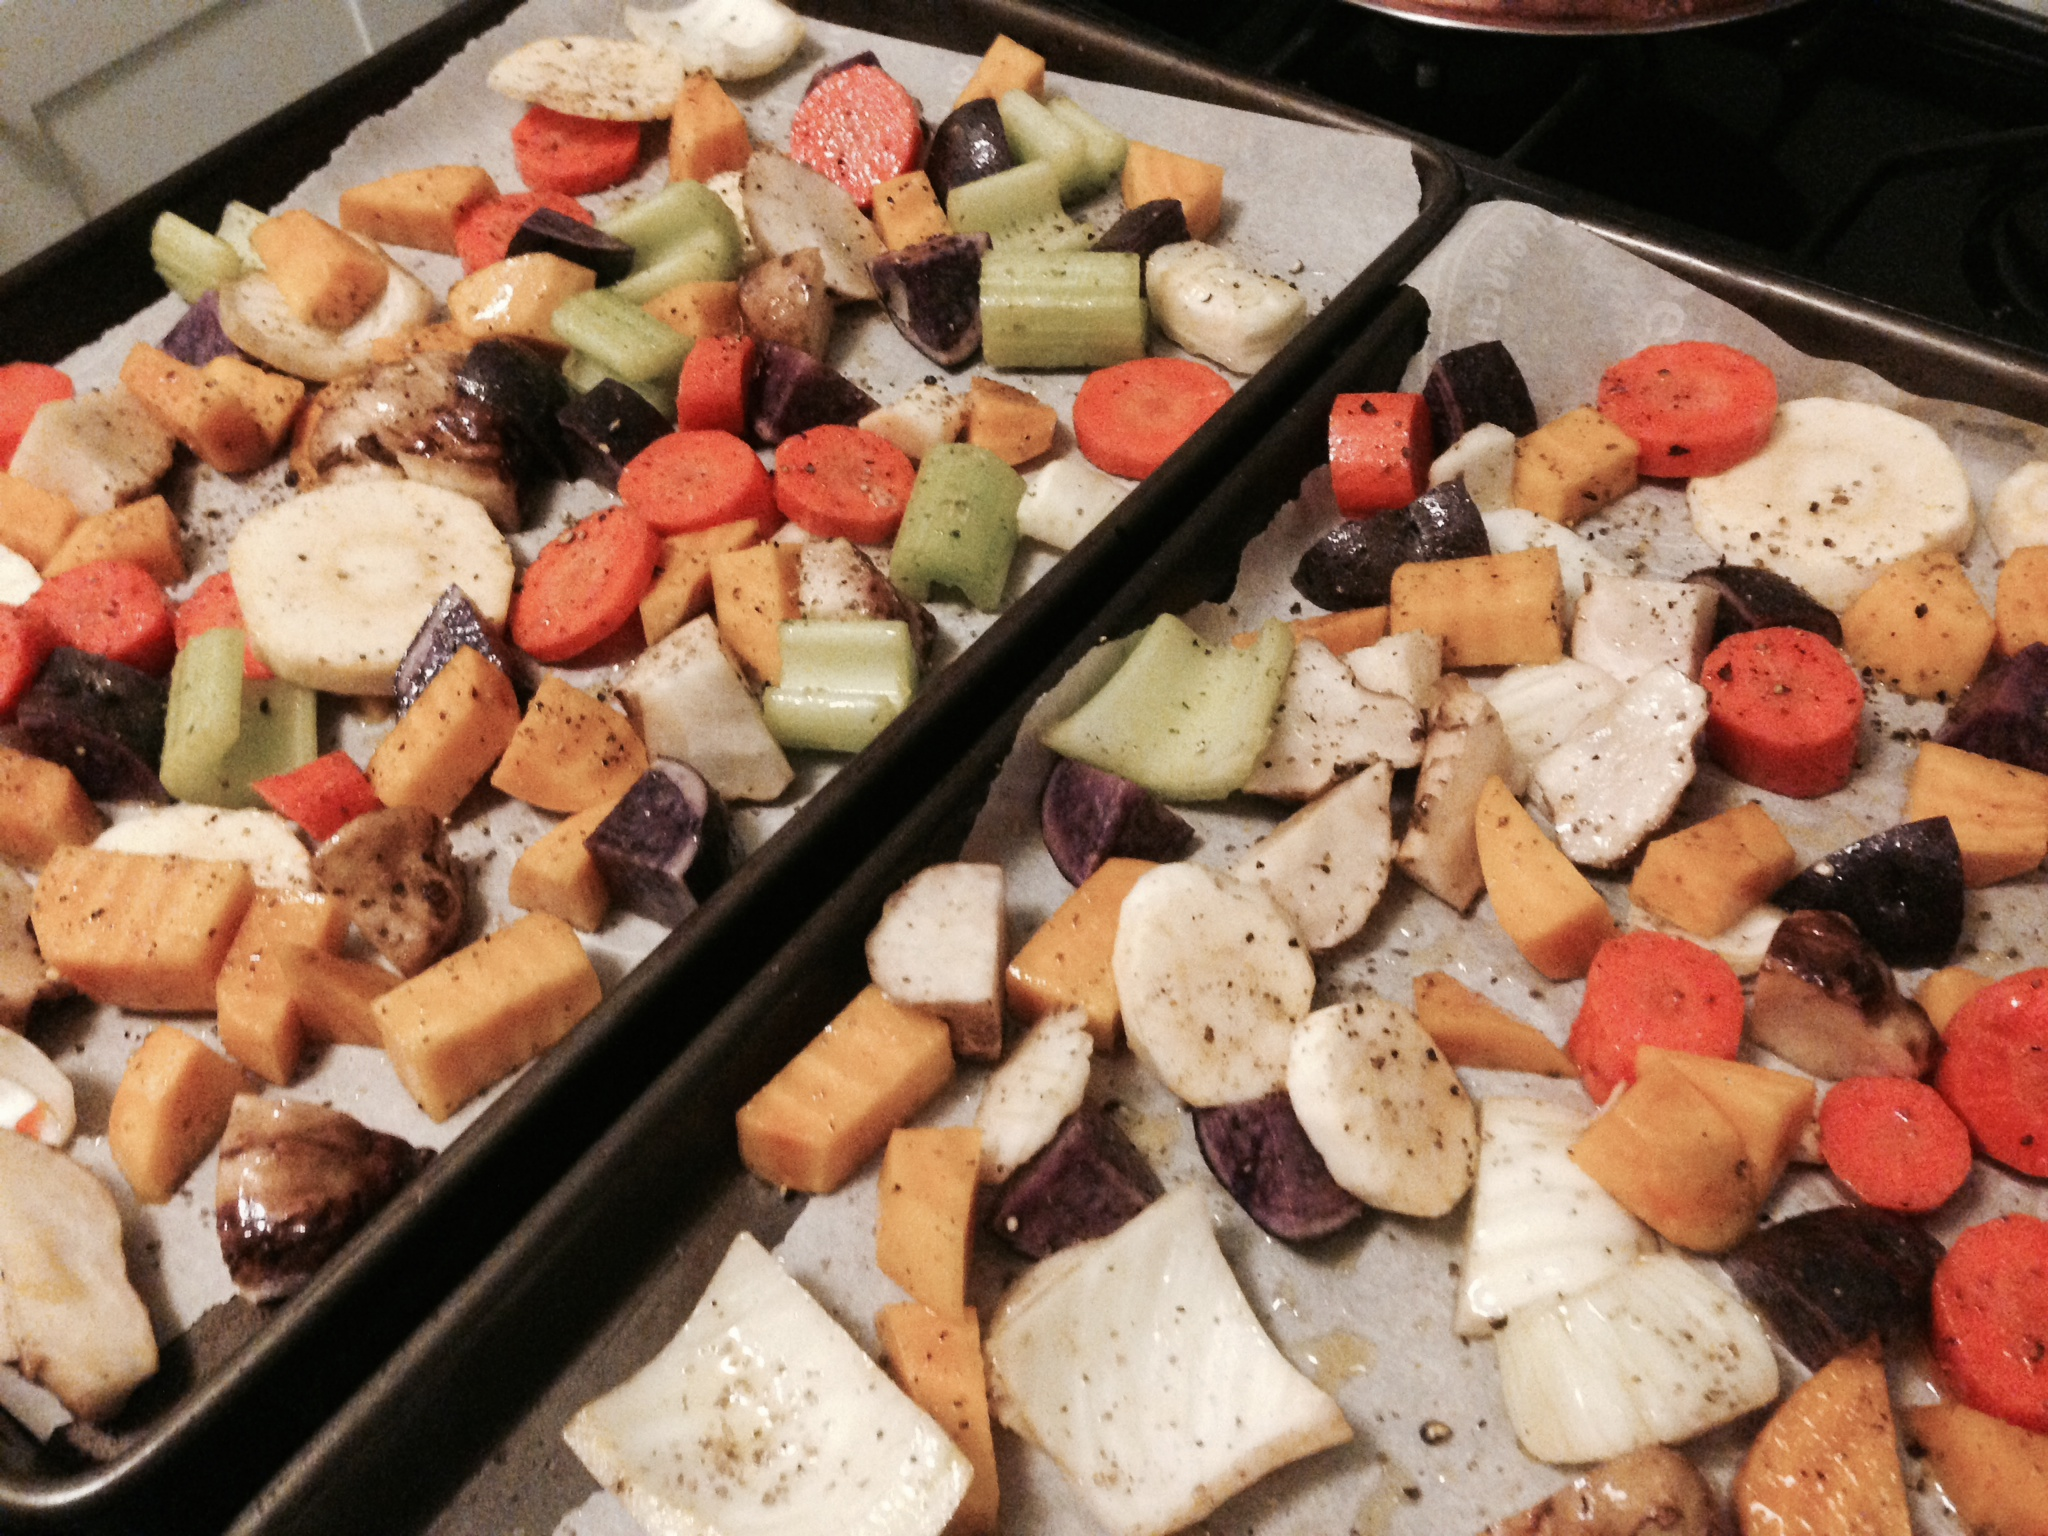 Mixed veggies, very colorful; and ready for the oven.